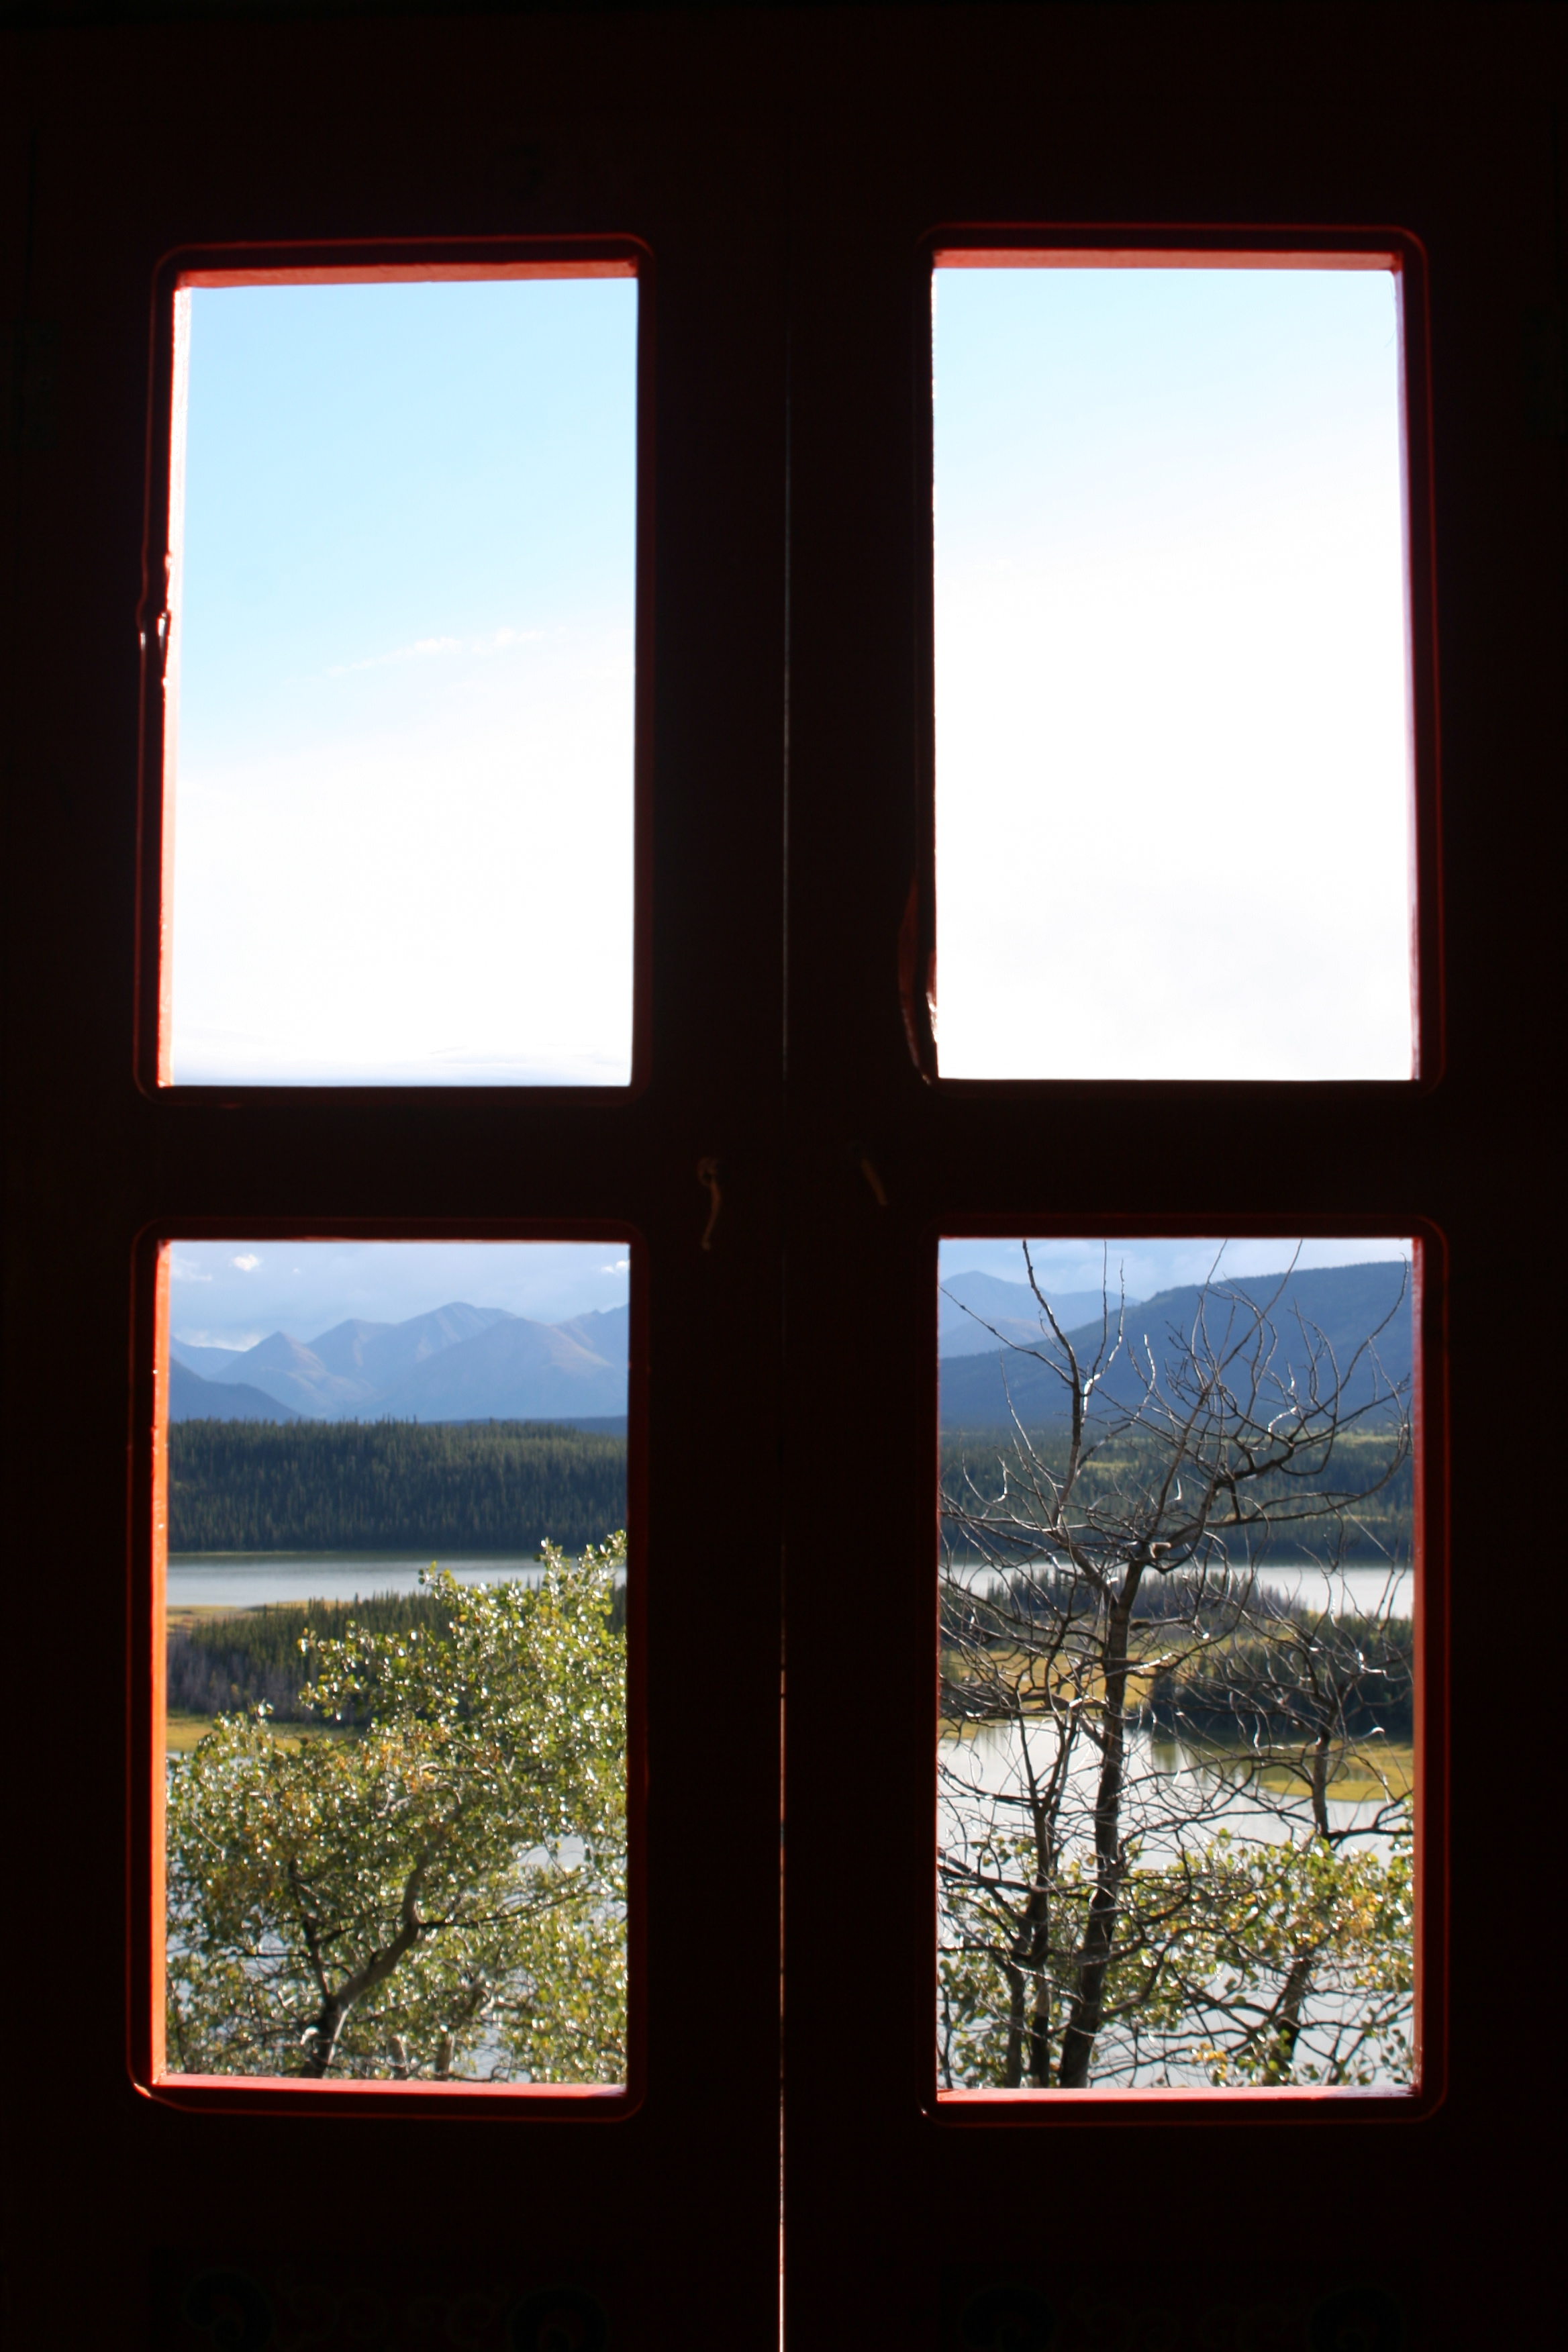 A view through the window.